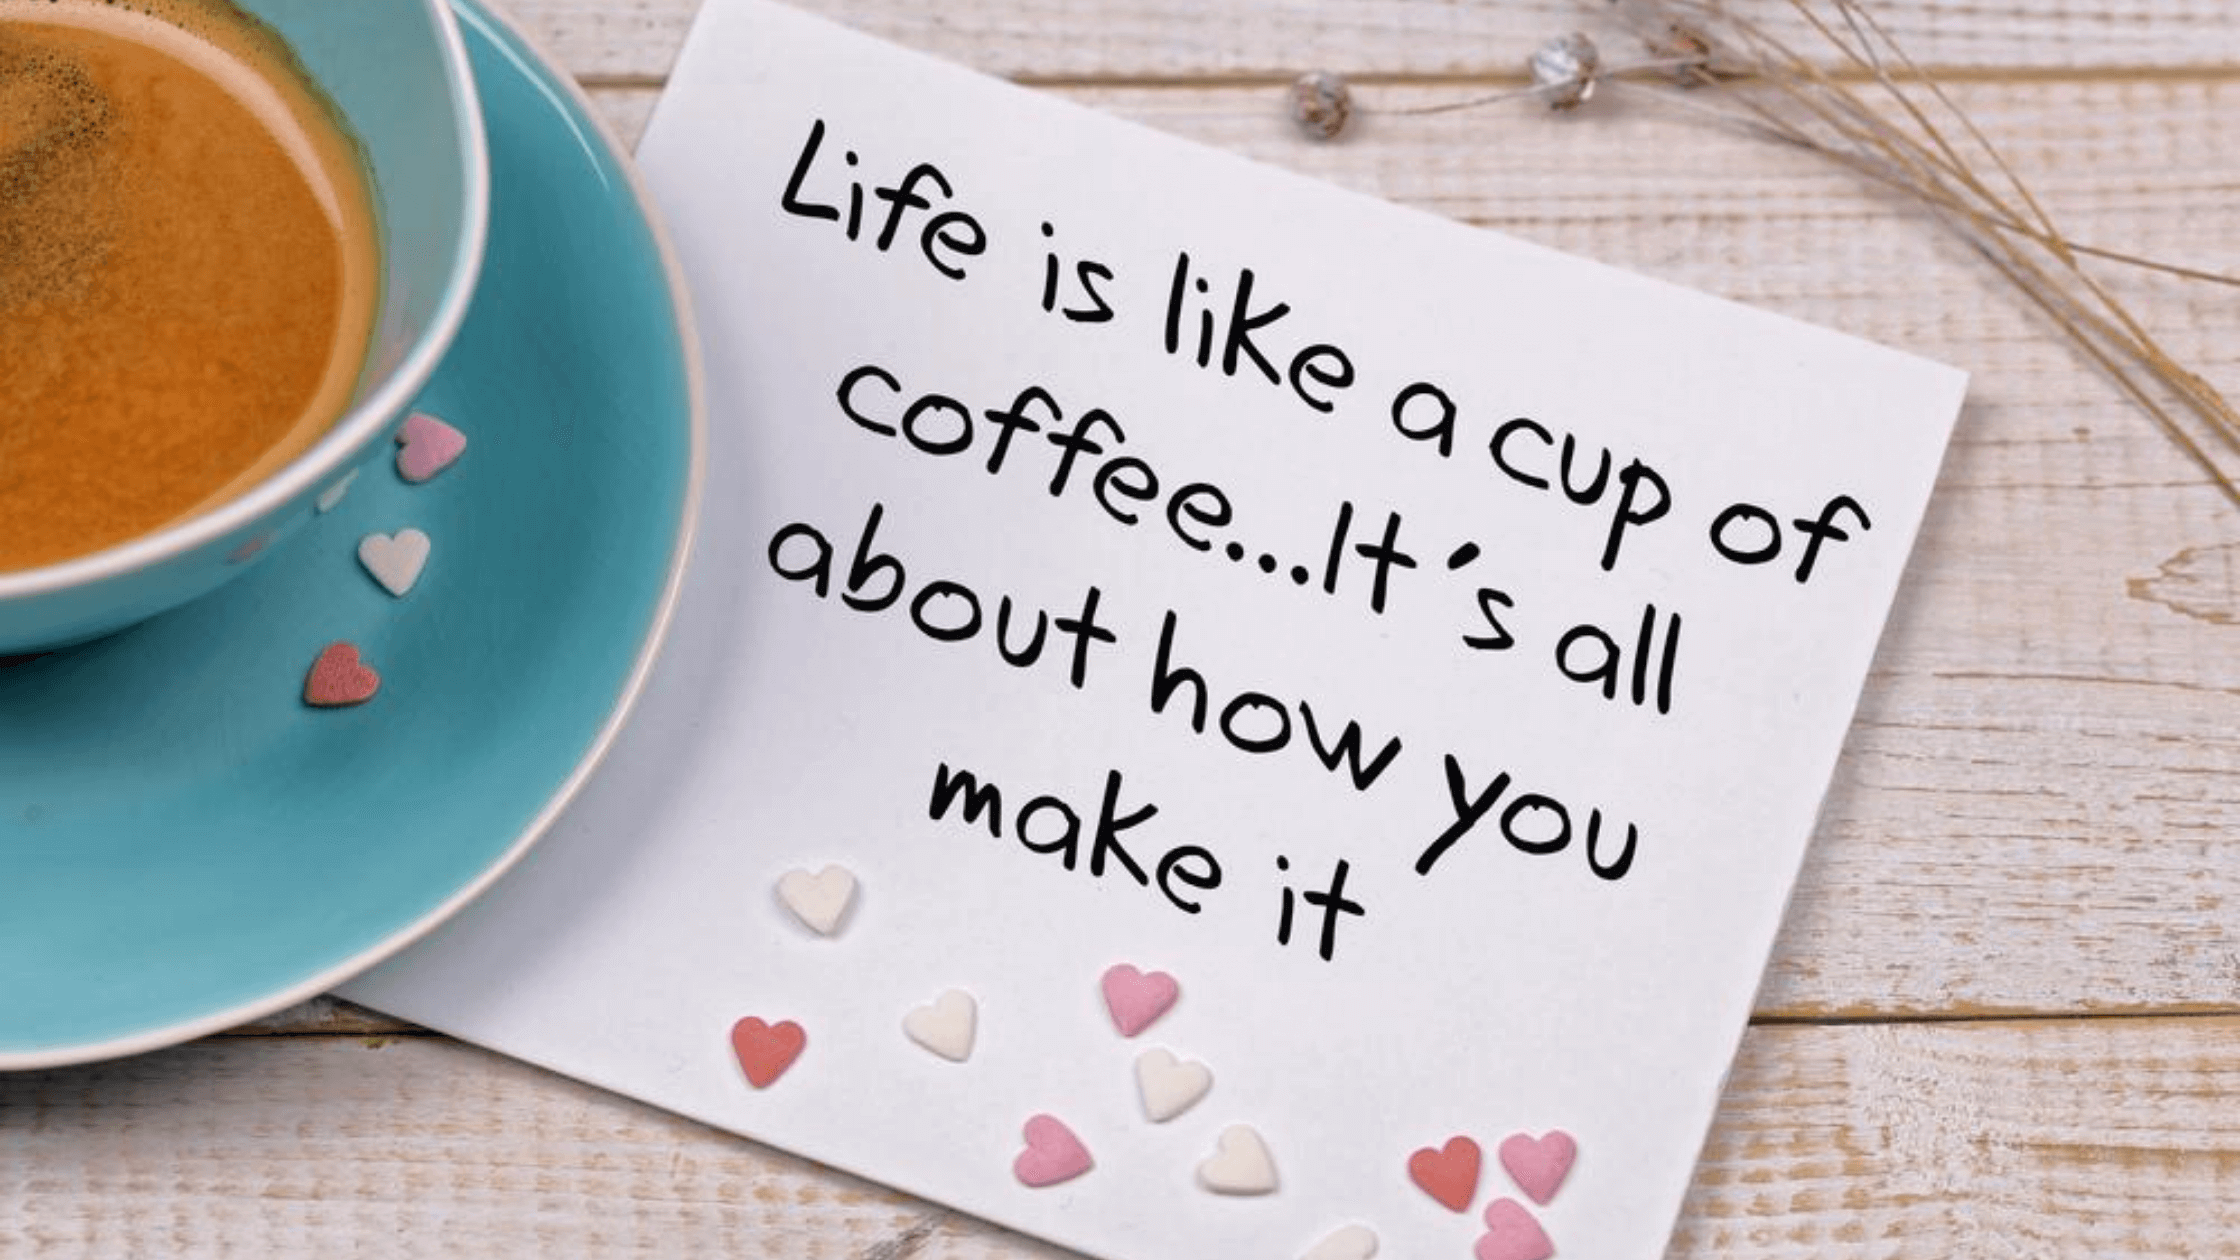 Life is like a cup of coffee, it's all about how you make it